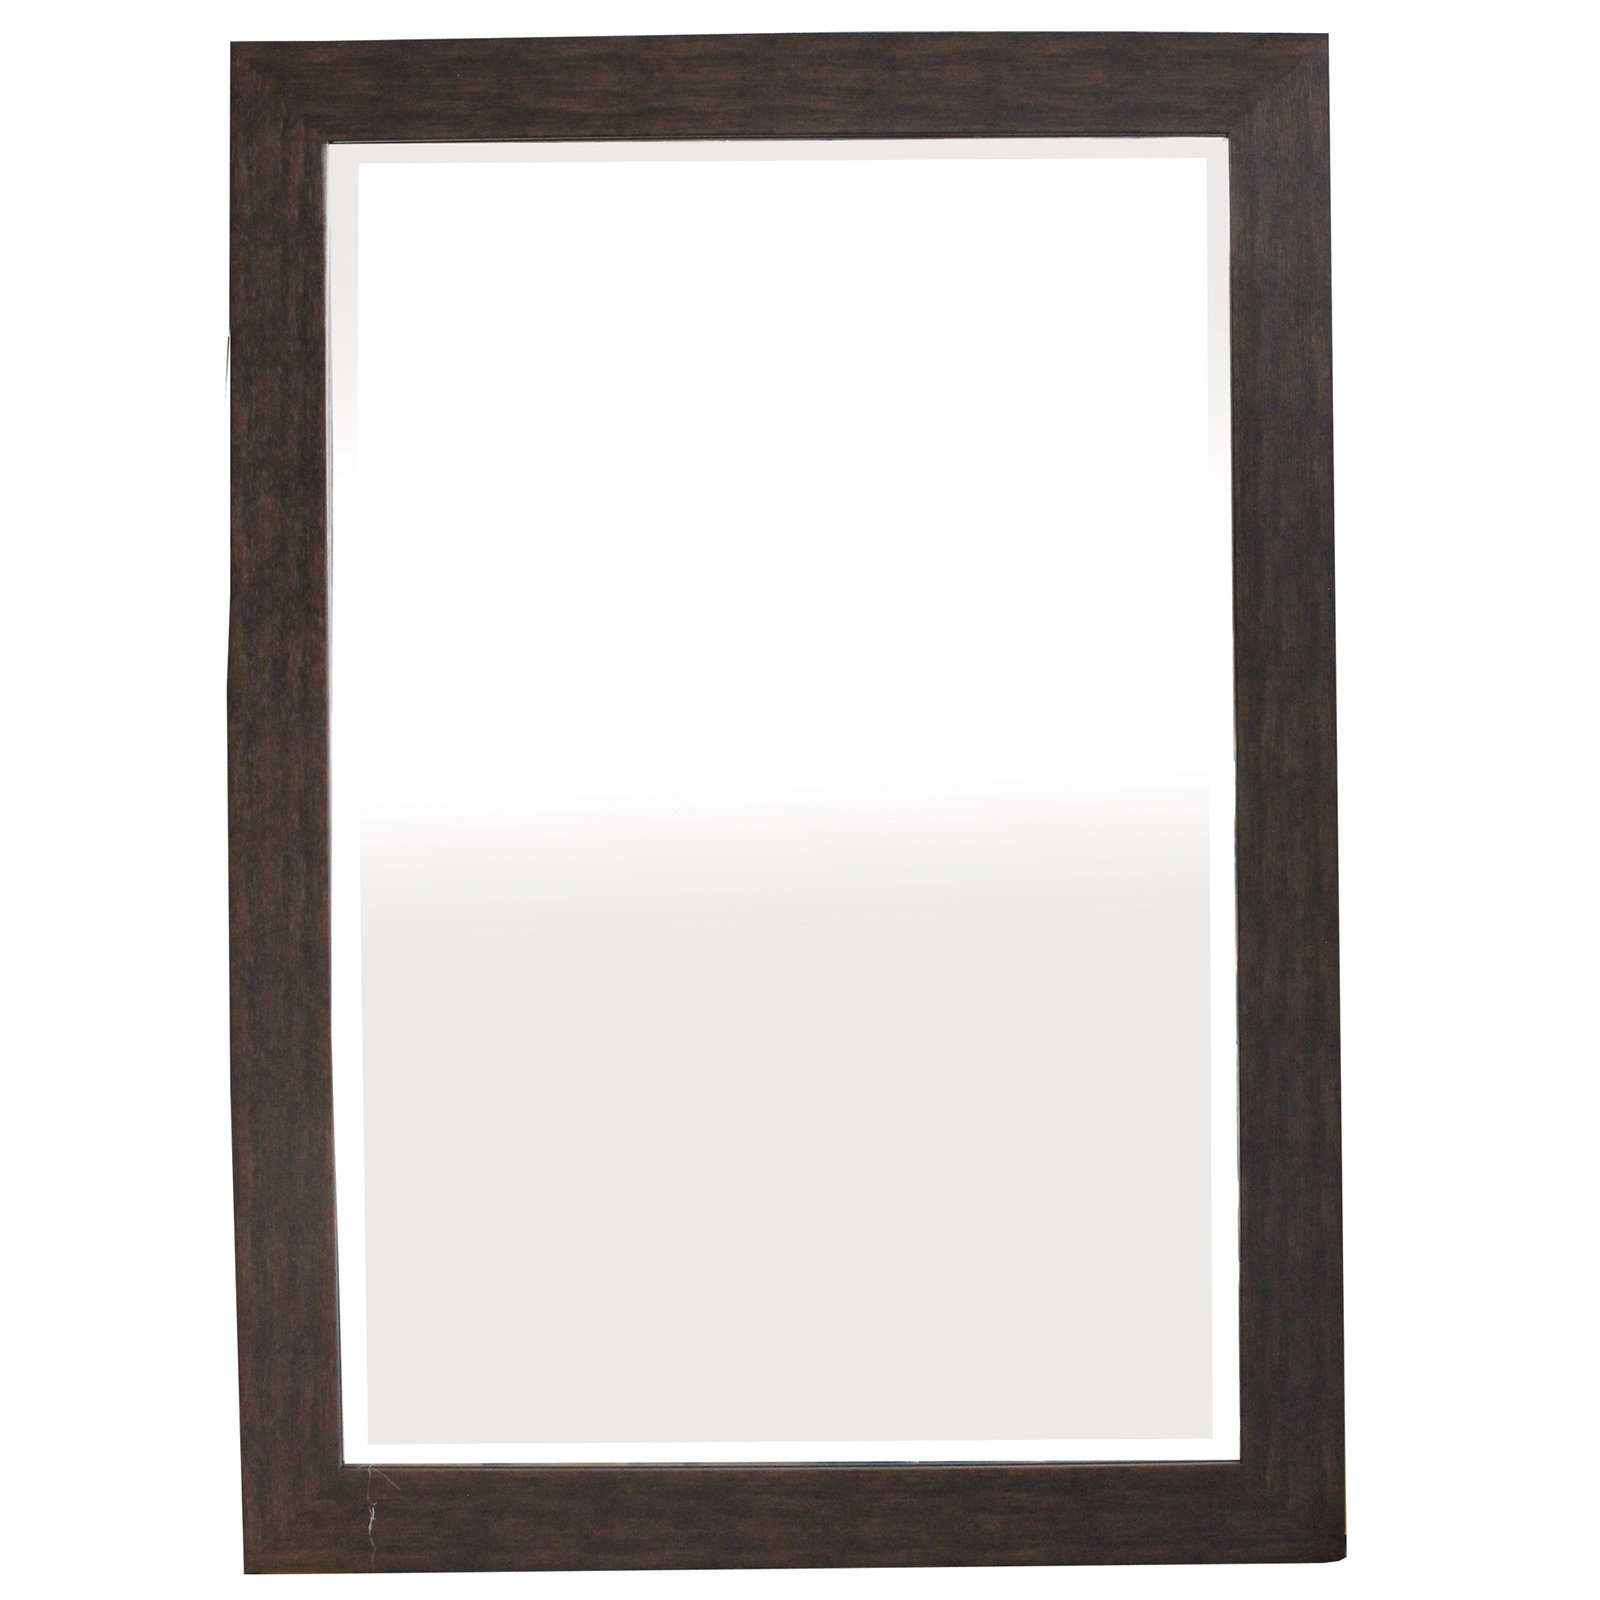 Popular Espresso Wall Mirrors For Yosemite Home Traditional Espresso Framed Wall Mirror (View 14 of 20)